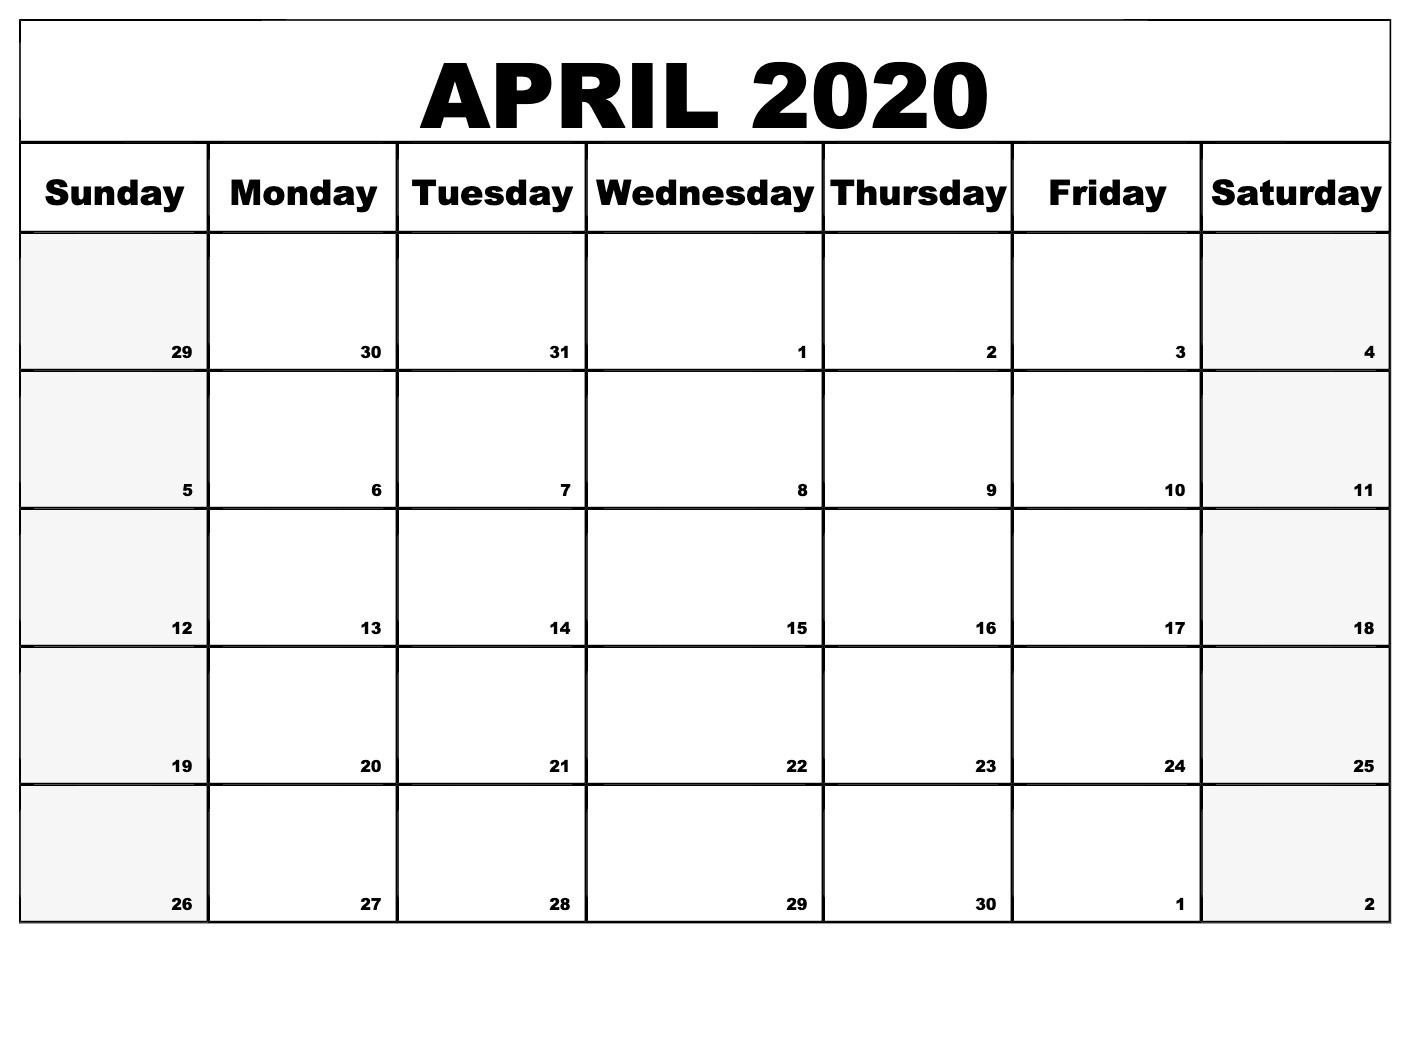 Free Printable Calendar April 2020 For Daily Schedule | Free with regard to Large Box Printable 2020 Calendar